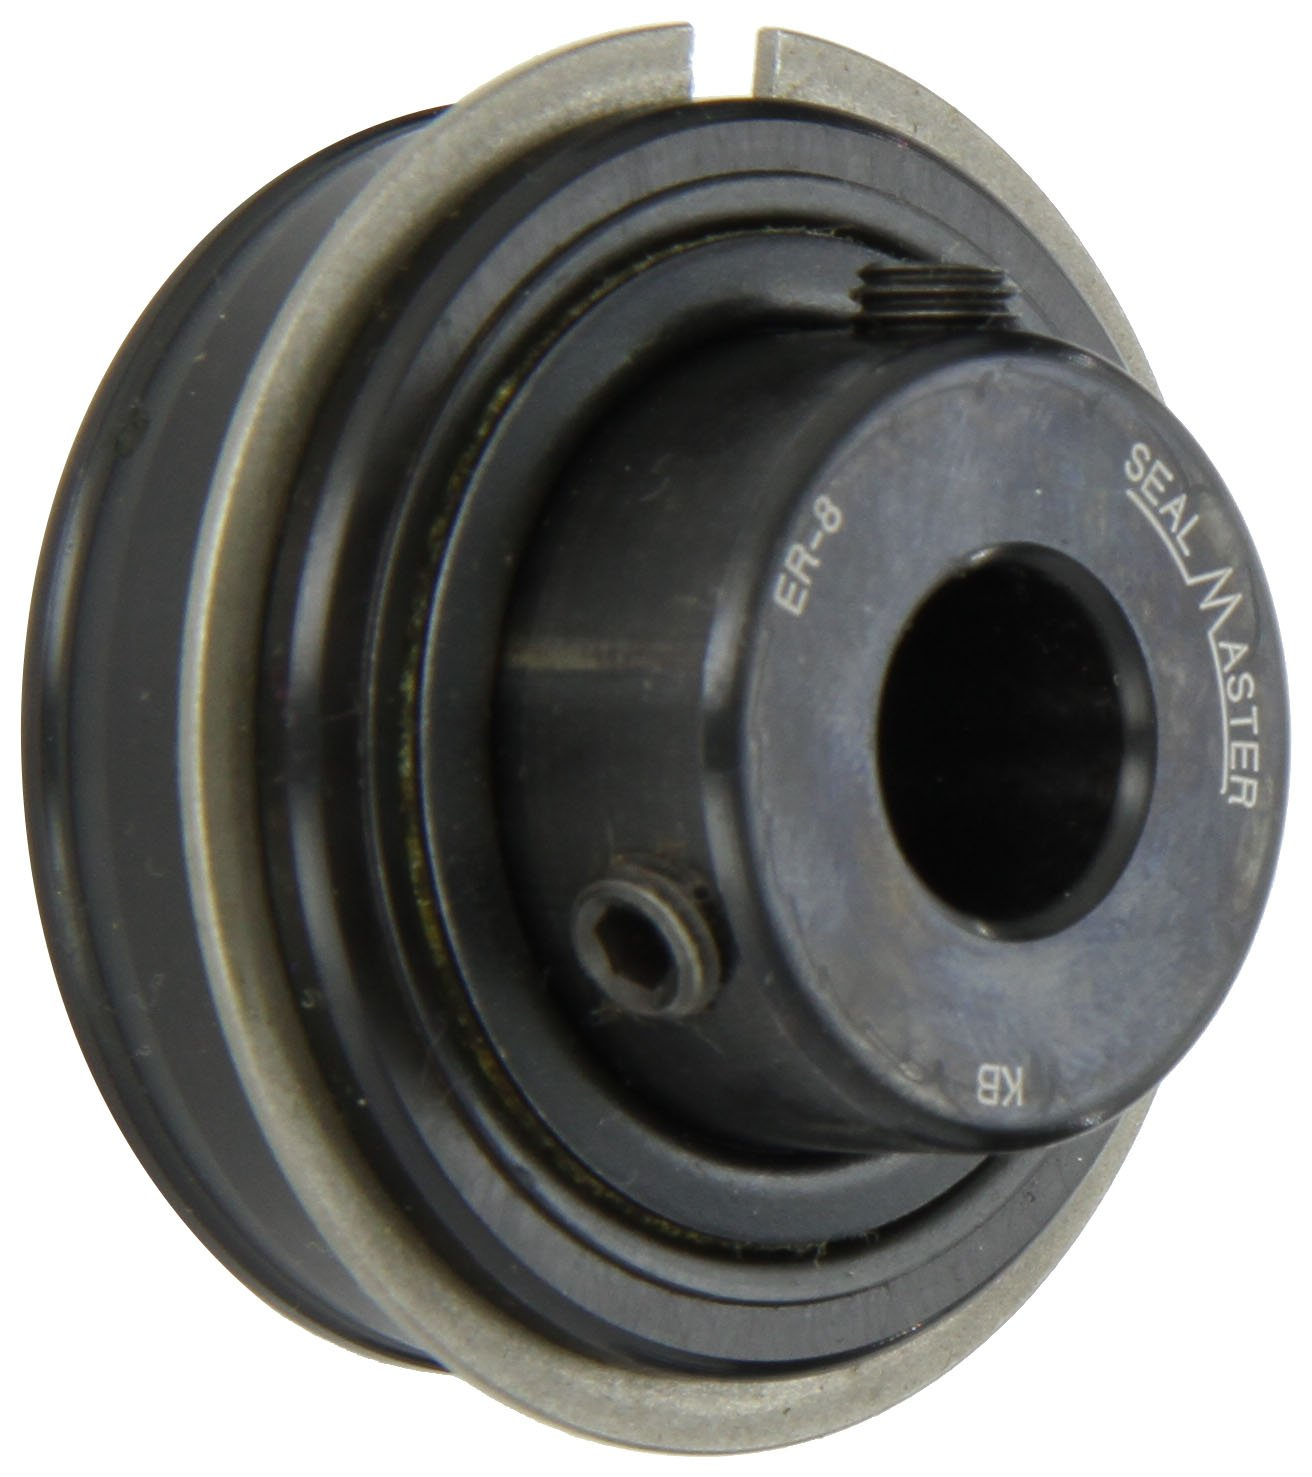 Sealmaster ER-8 Cylindrical OD Bearing outlet Setscrew Collar Our shop OFFers the best service Locking